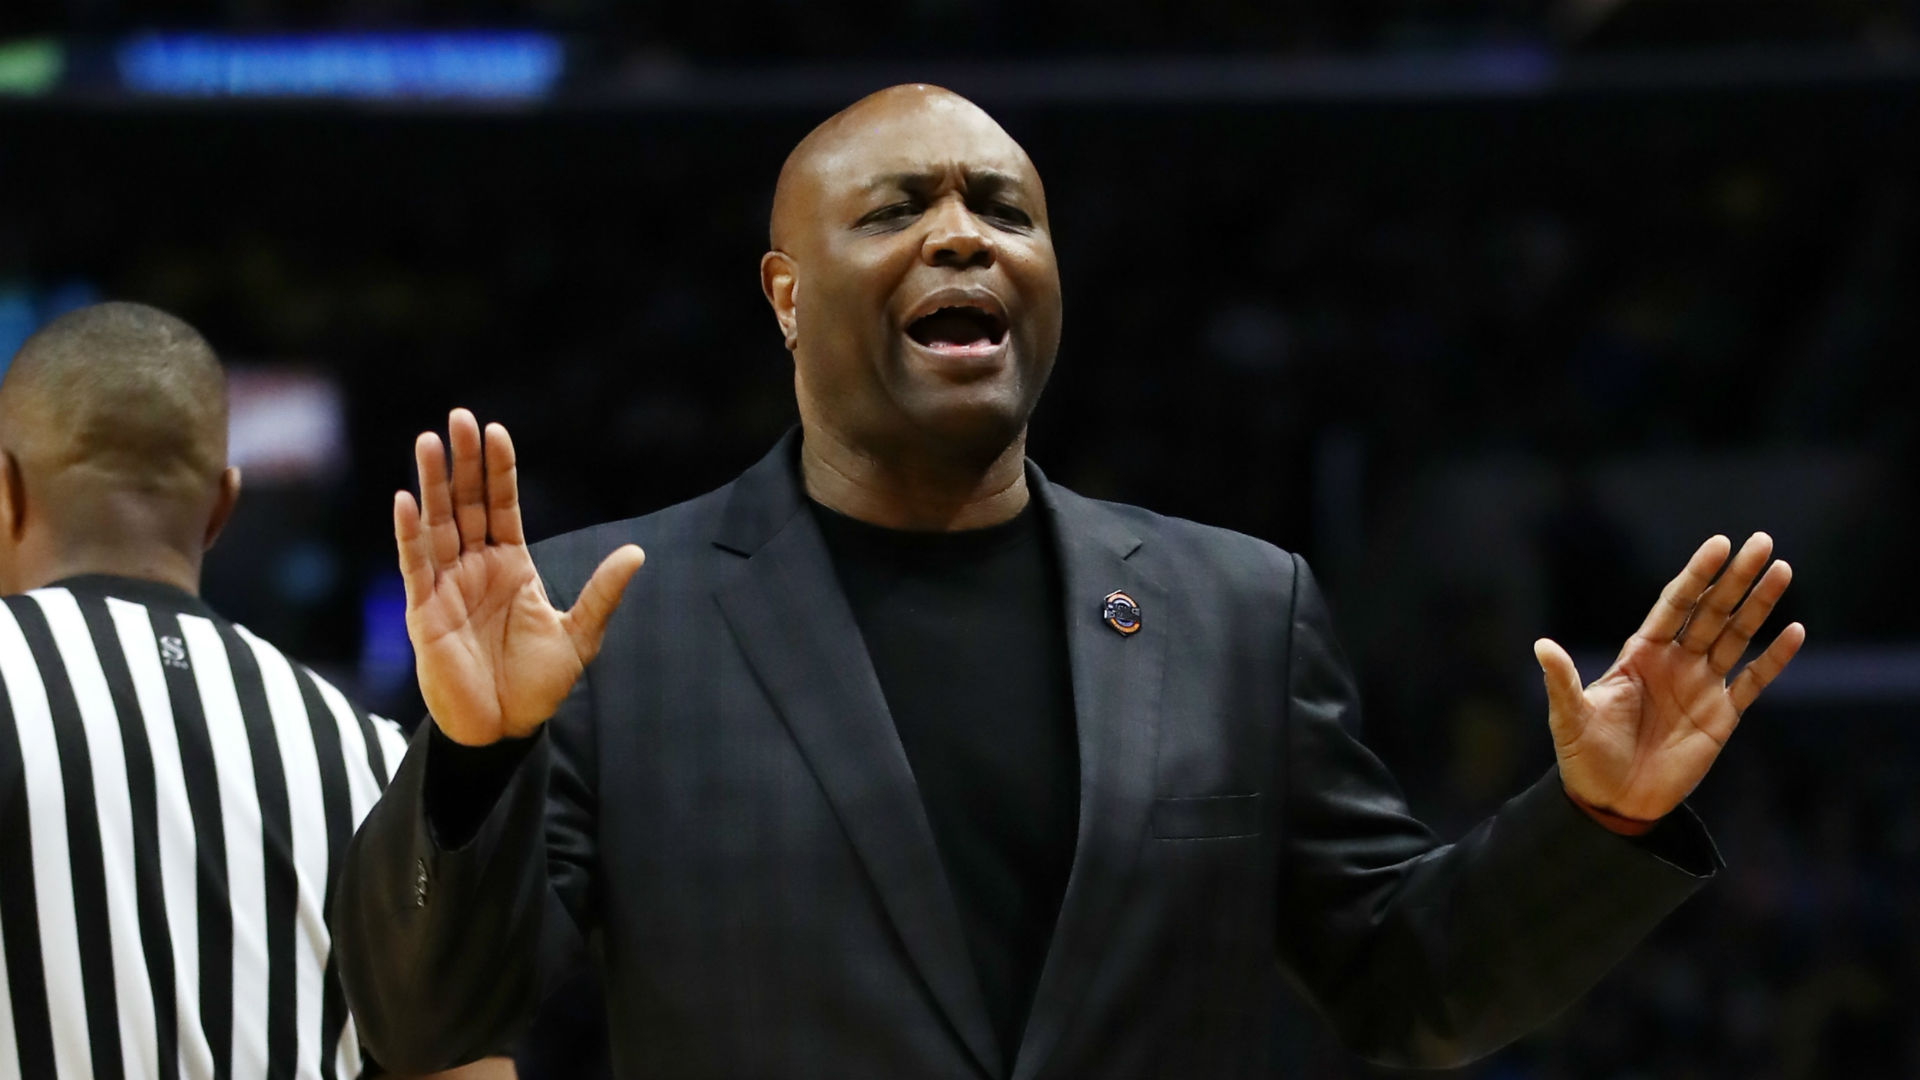 Leonard Hamilton Got Caught Up in The Moment